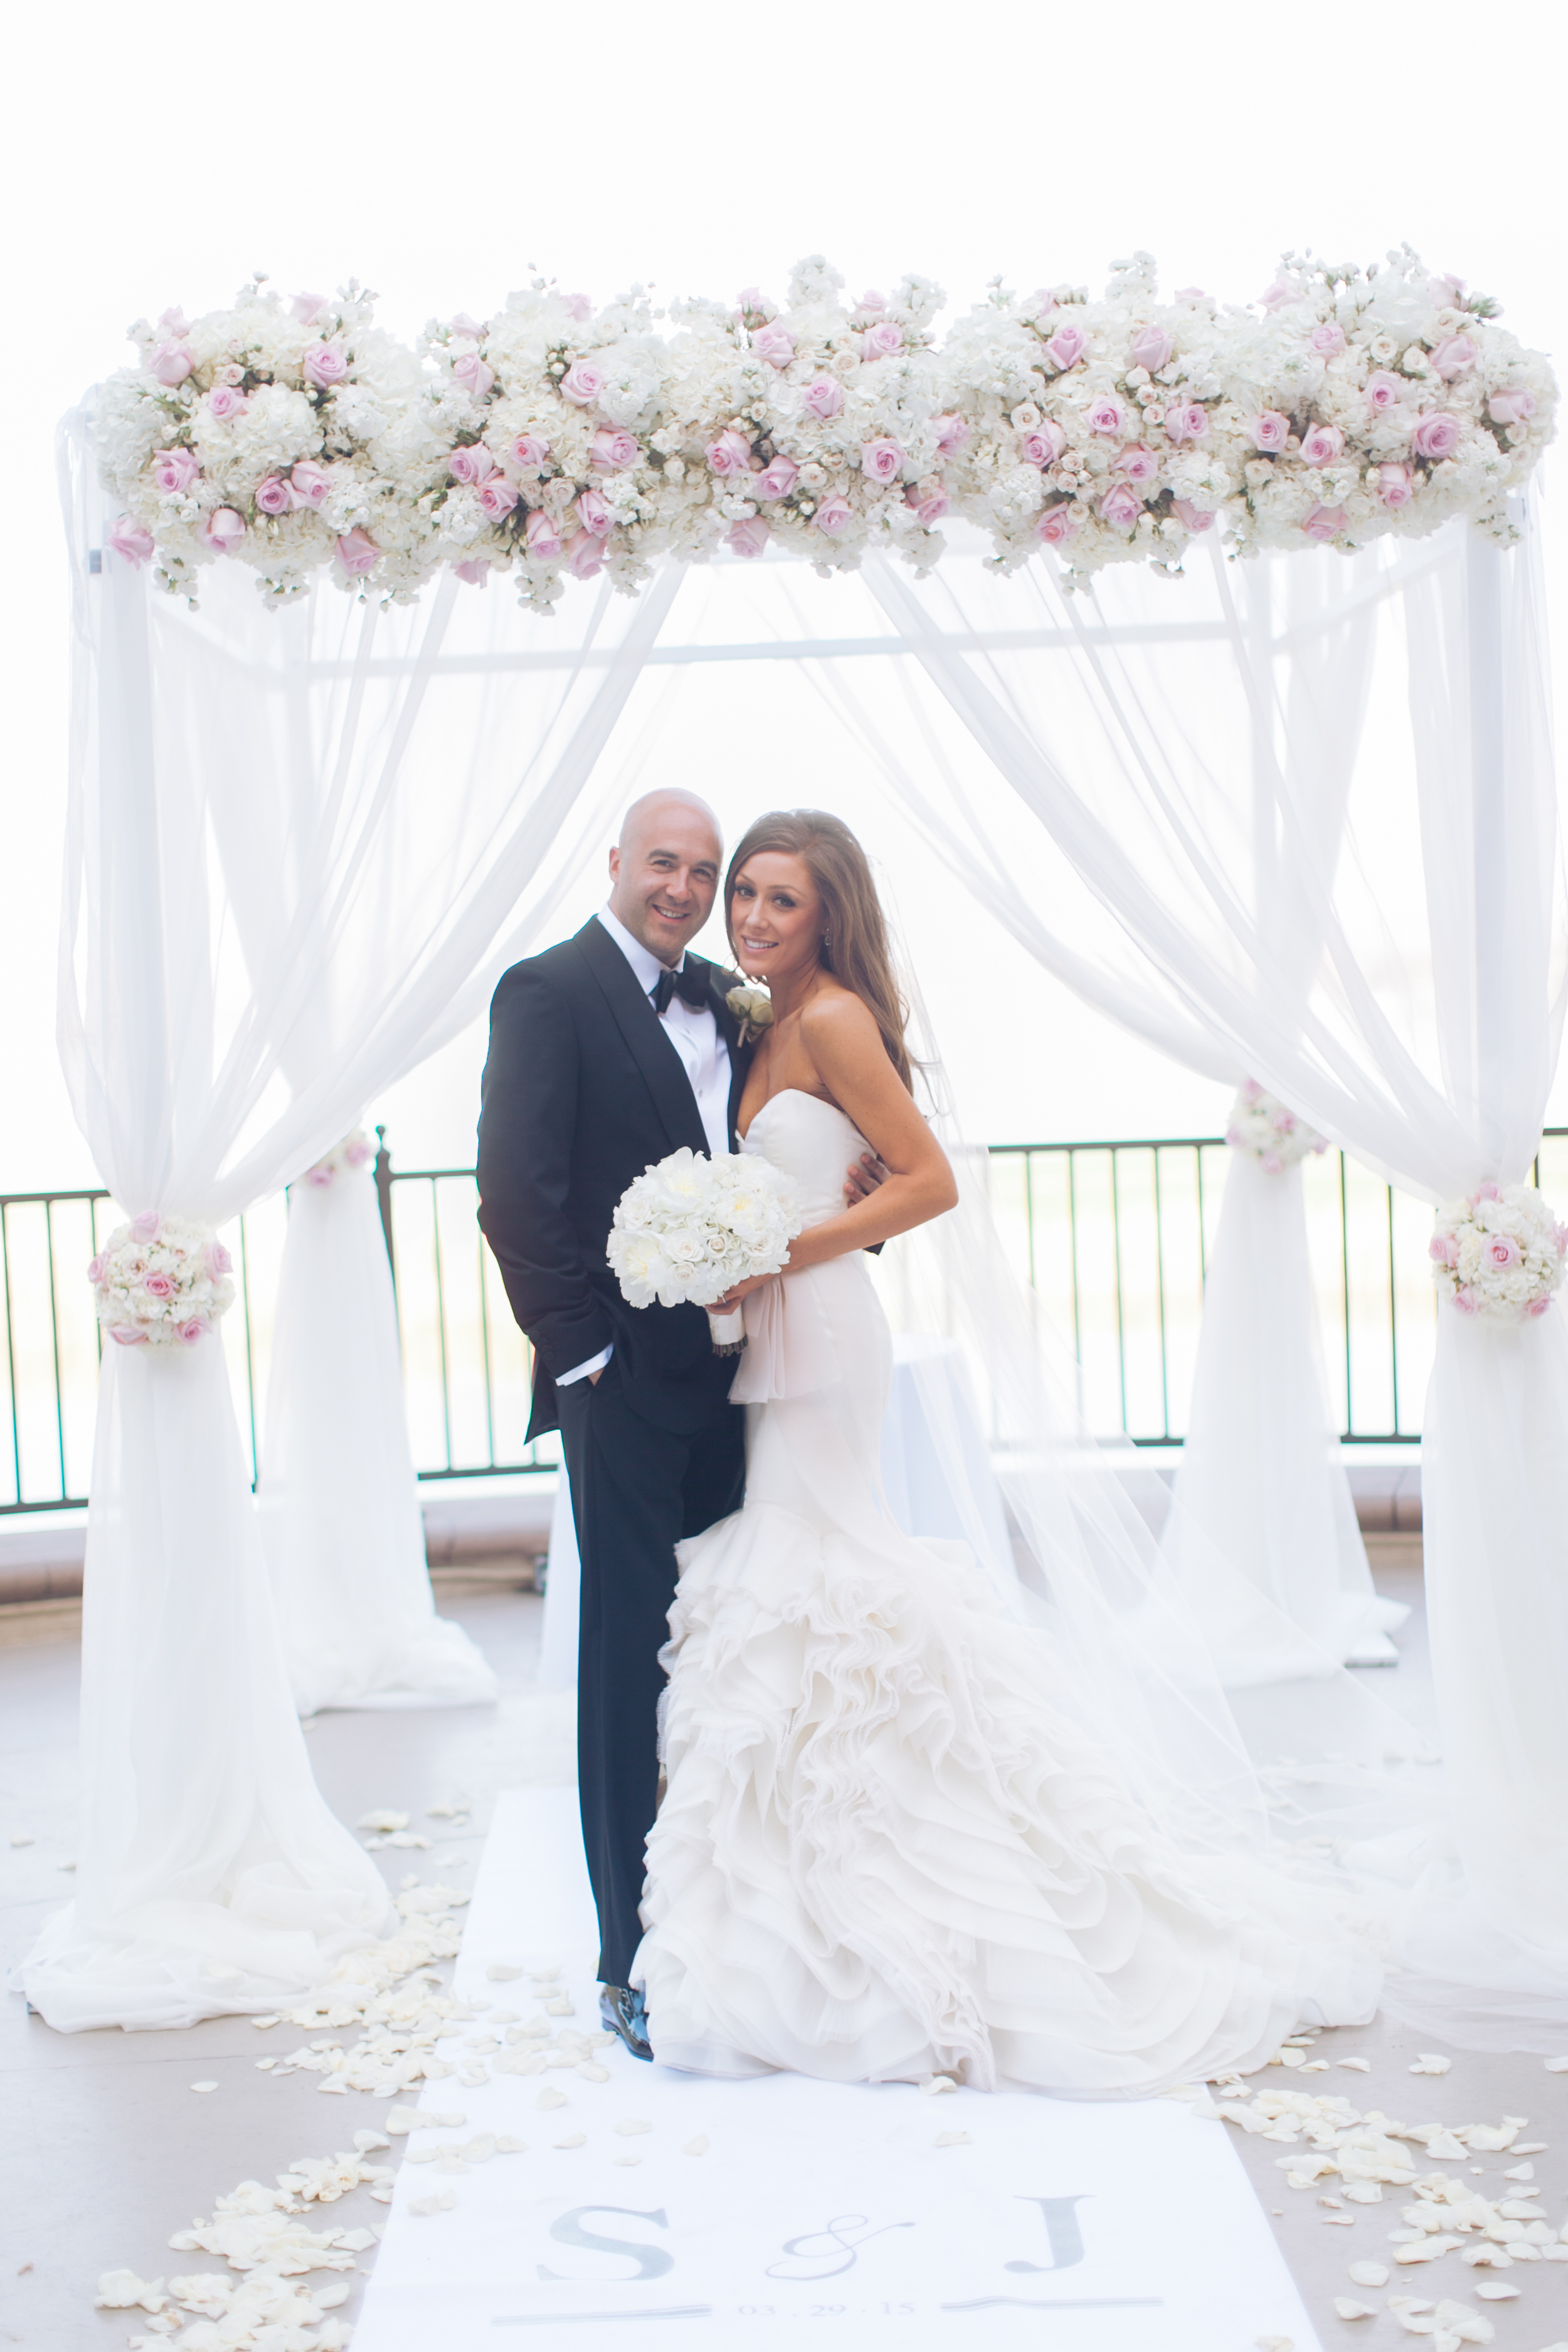 """The bride and groom hosted a beautiful, romantic ceremony at Lotus Court at The Westin Lake Las Vegas. Their aisle runner featured their """"S&J"""" monogram and wedding date.    Las Vegas Wedding Planner Andrea Eppolito   Wedding at Lake Las Vegas   White and Blu  sh and Grey Wedding   Luxury Wedding Las Vegas"""